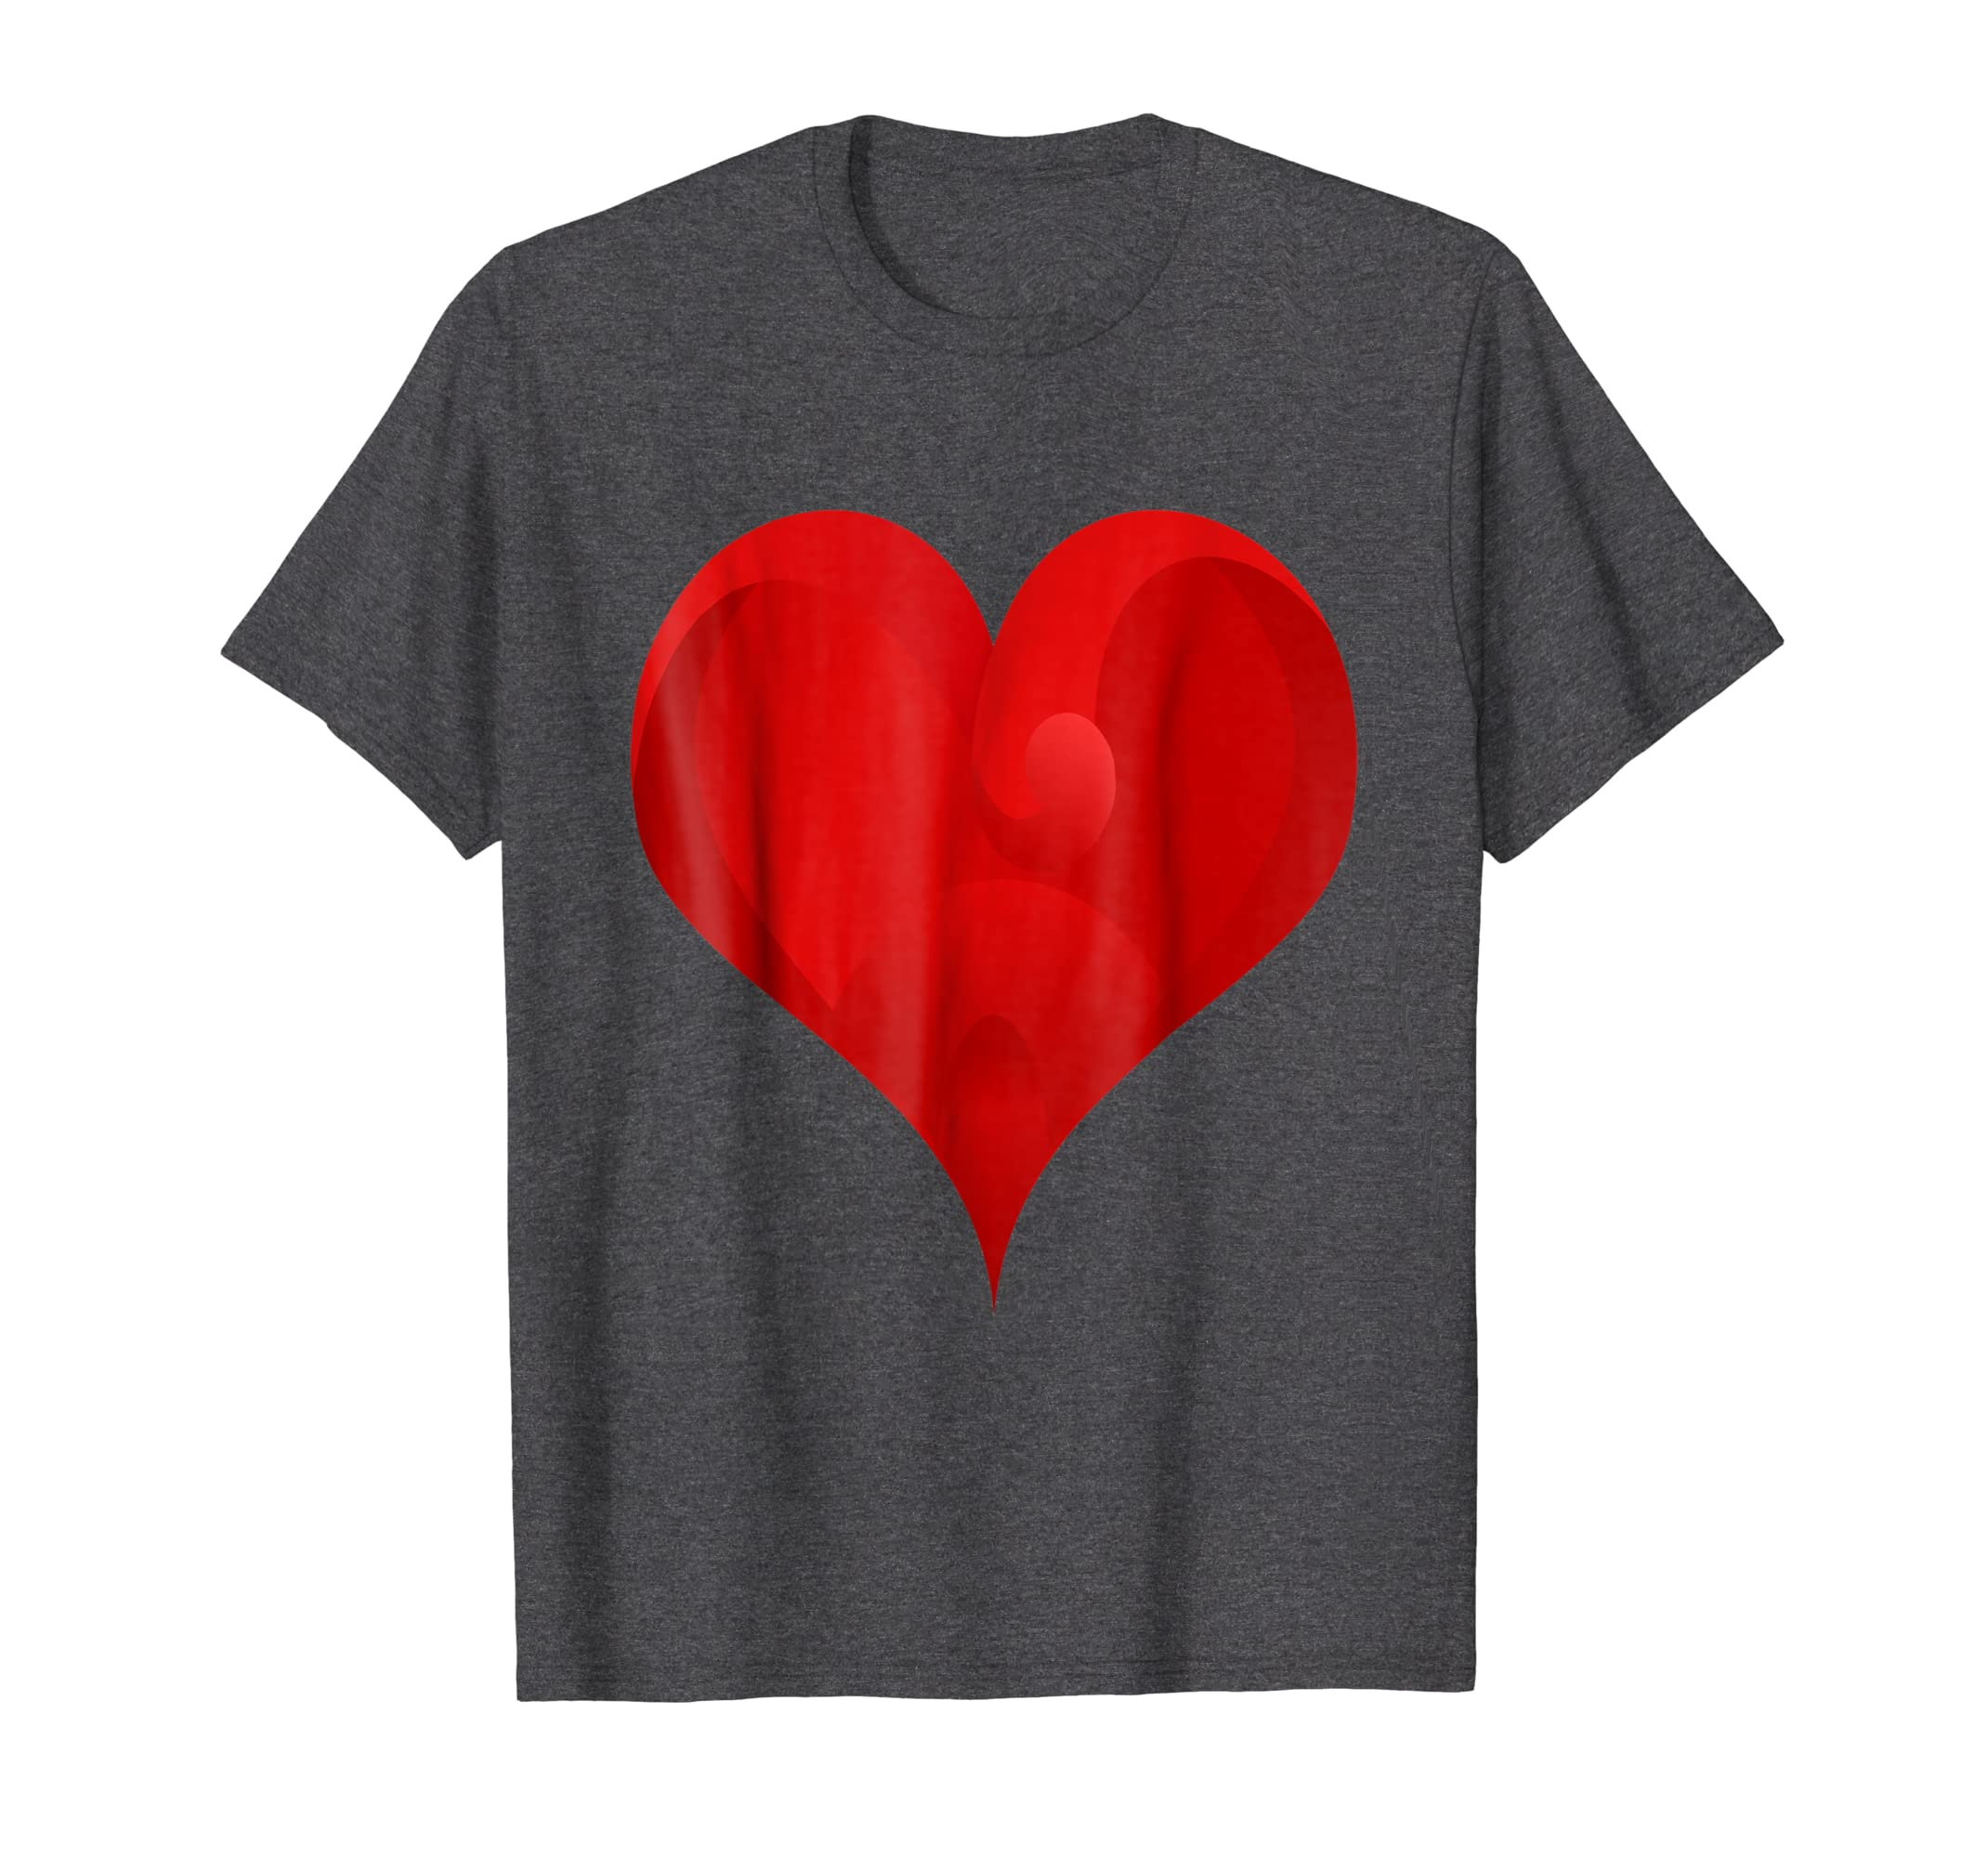 8dbf12559949 Amazon.com  Big Red Heart T-shirt  Clothing